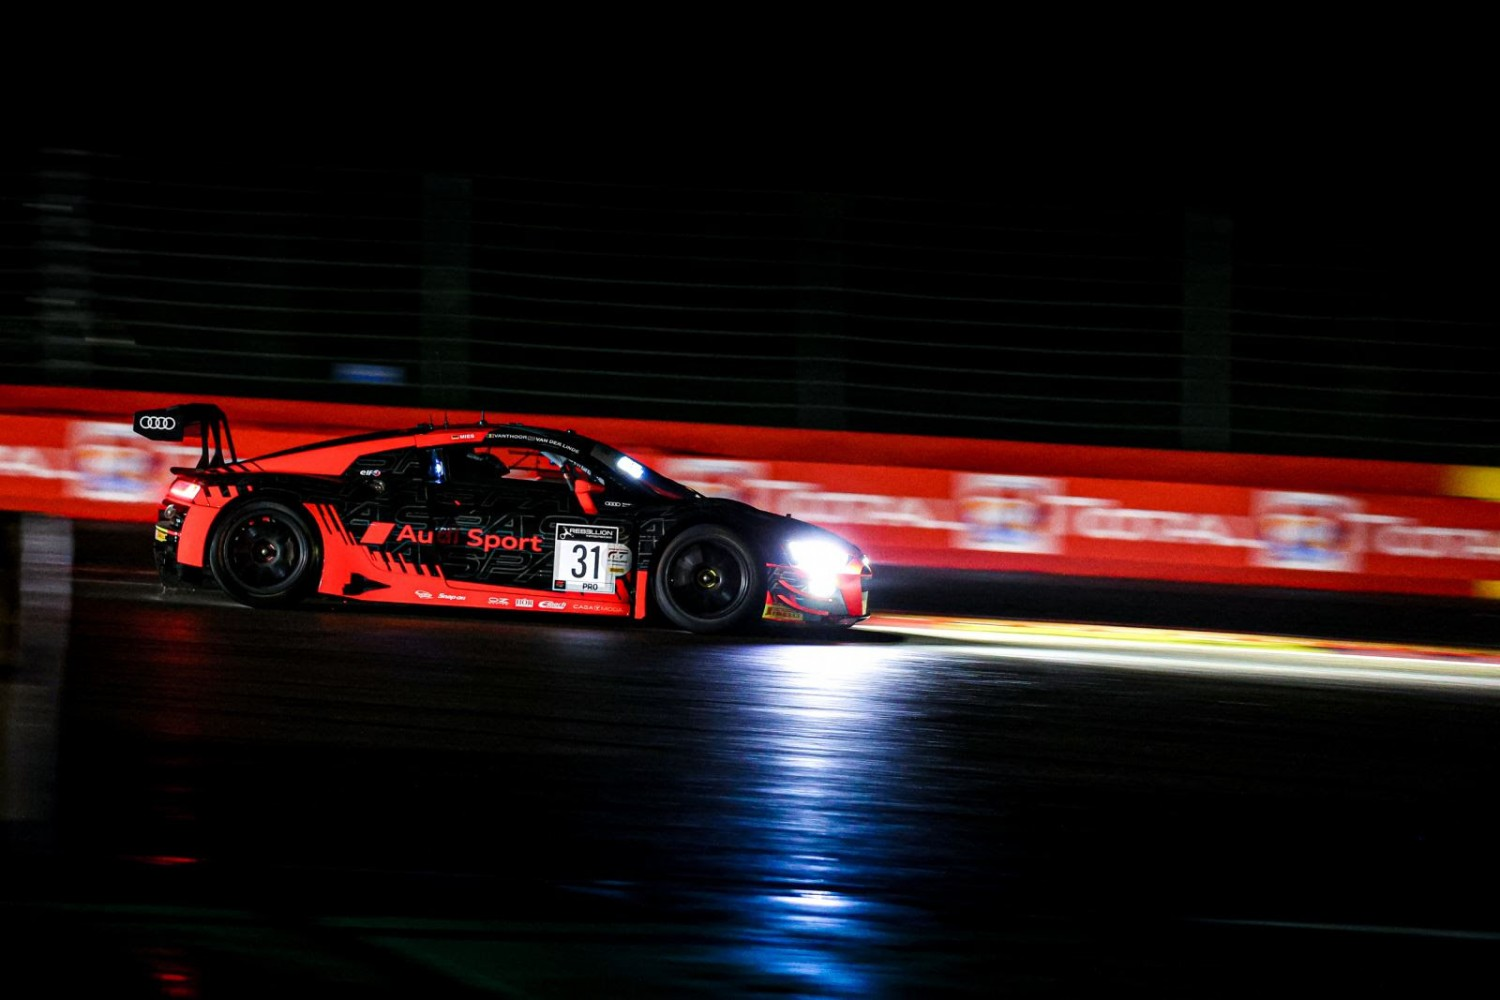 Audi Sport Team WRT leads the charge to Super Pole in Total 24 Hours of Spa qualifying